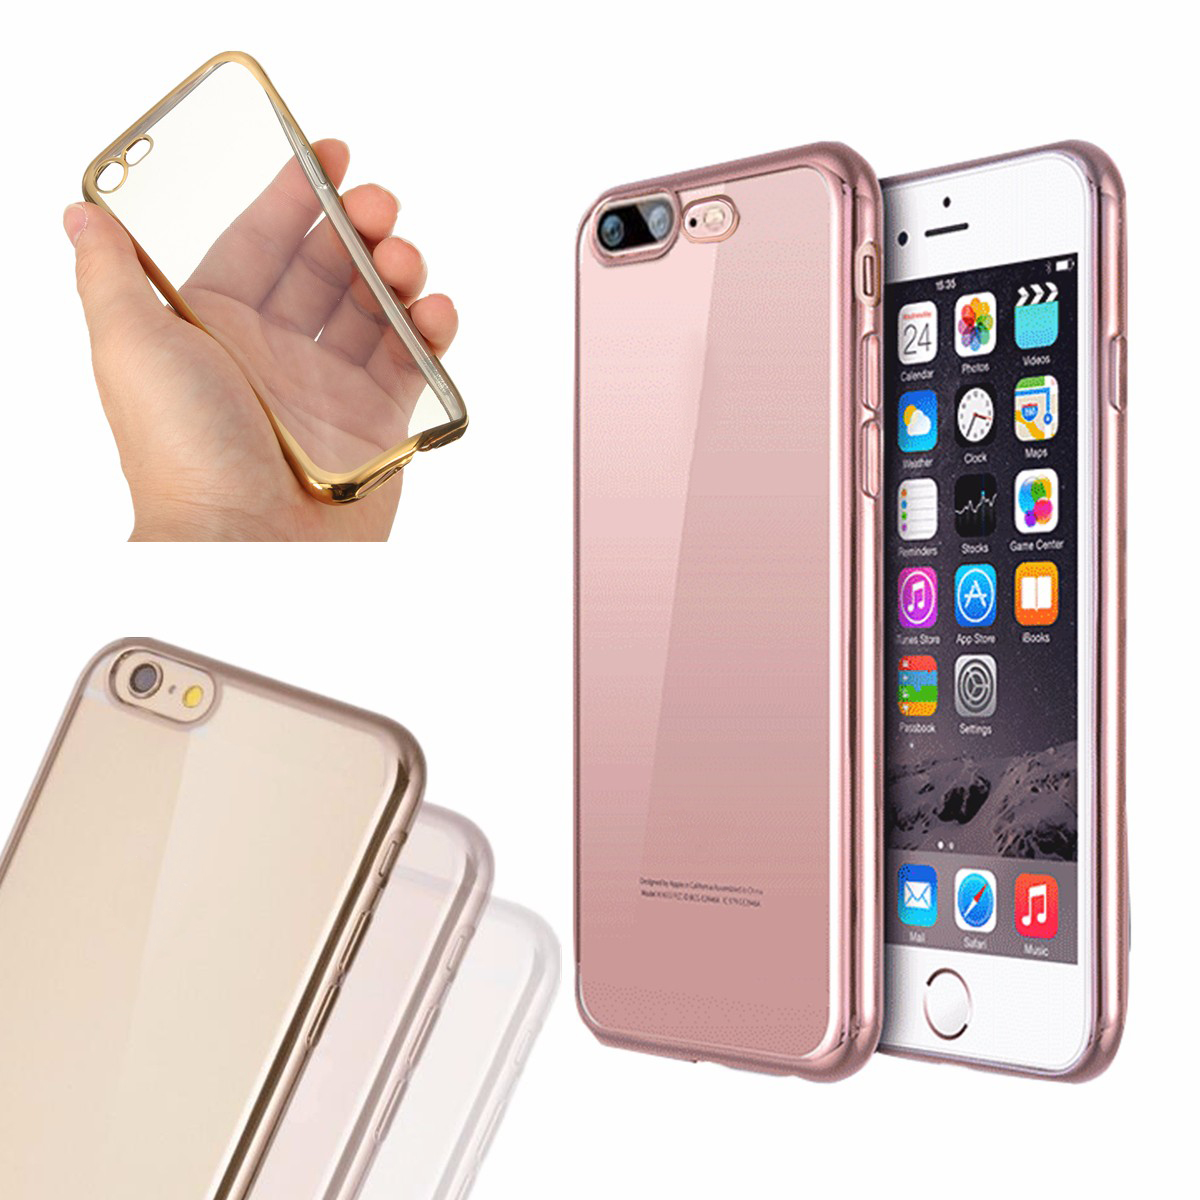 on sale 8bc0d 379db For iPhone 7/7 Plus Ultra Slim Clear Soft TPU Gel Shockproof Back Case  Cover Skin